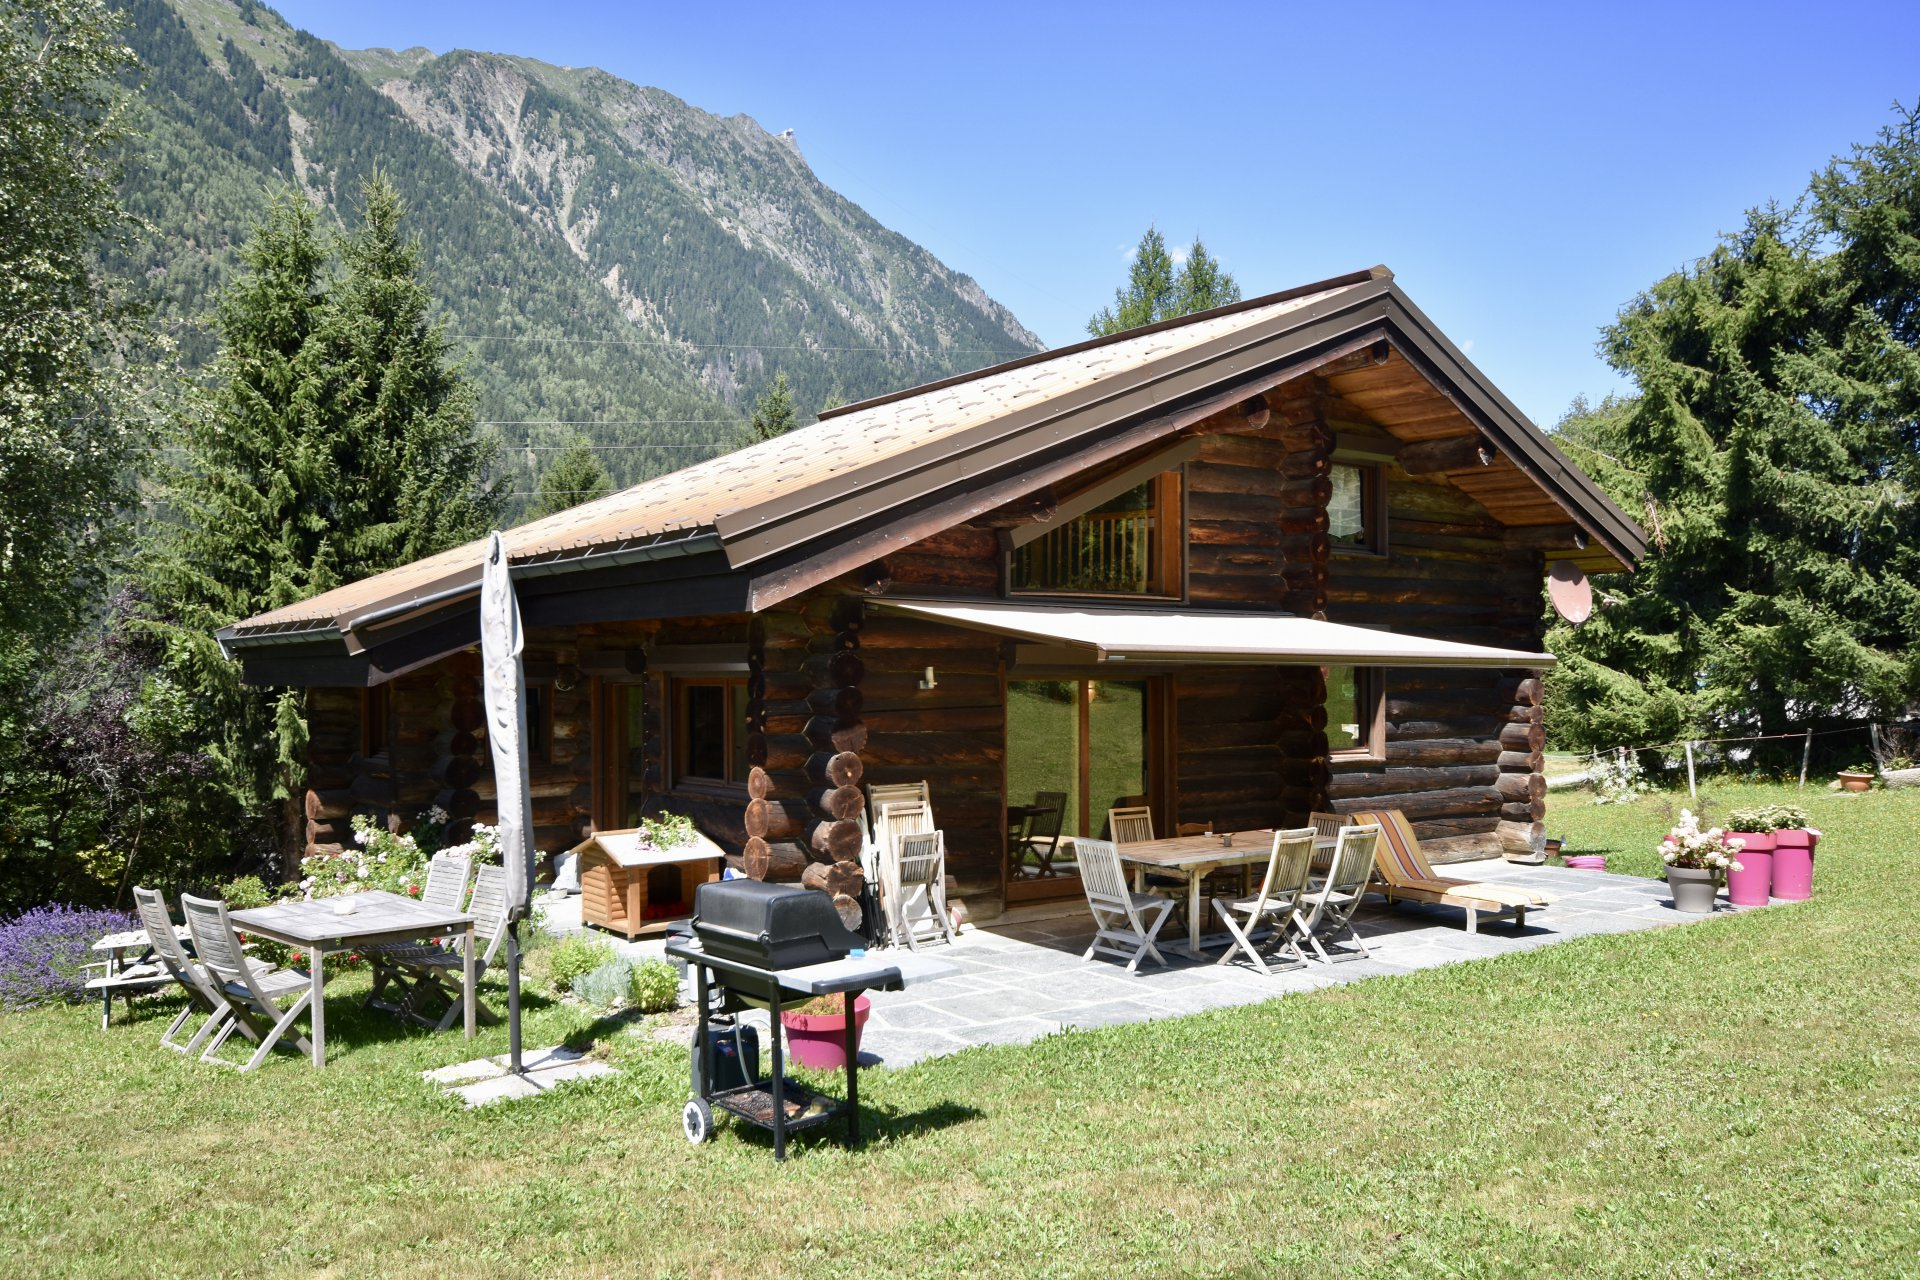 Chalet on the edge of the forest